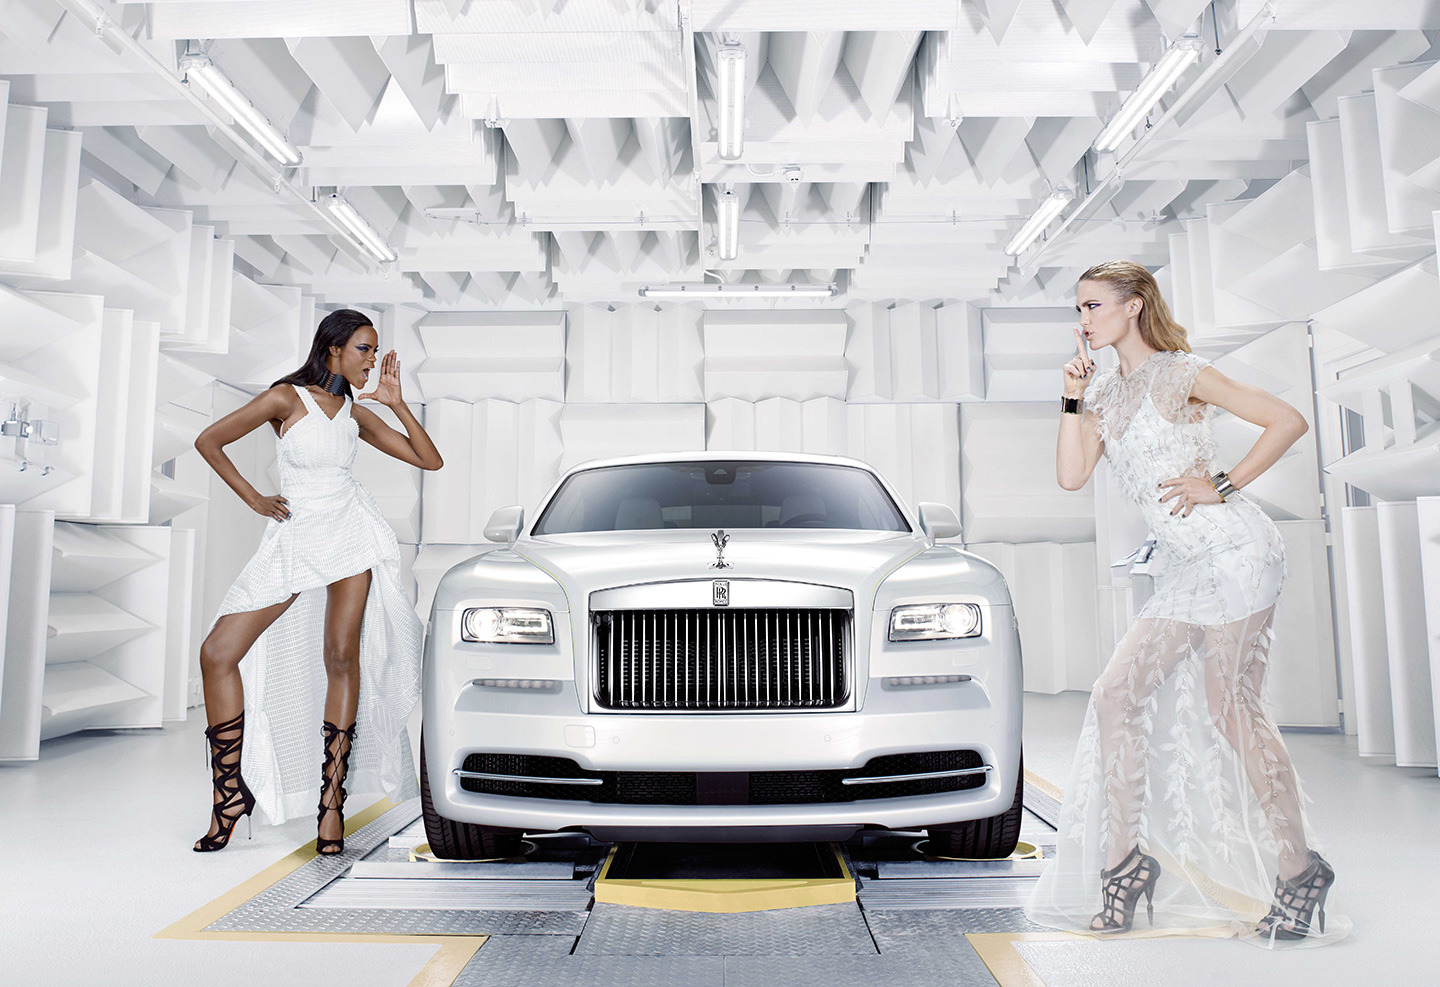 Rolls Royce Dawn Inspired by fashion: lujo inspirado en el lujo de la alta costura